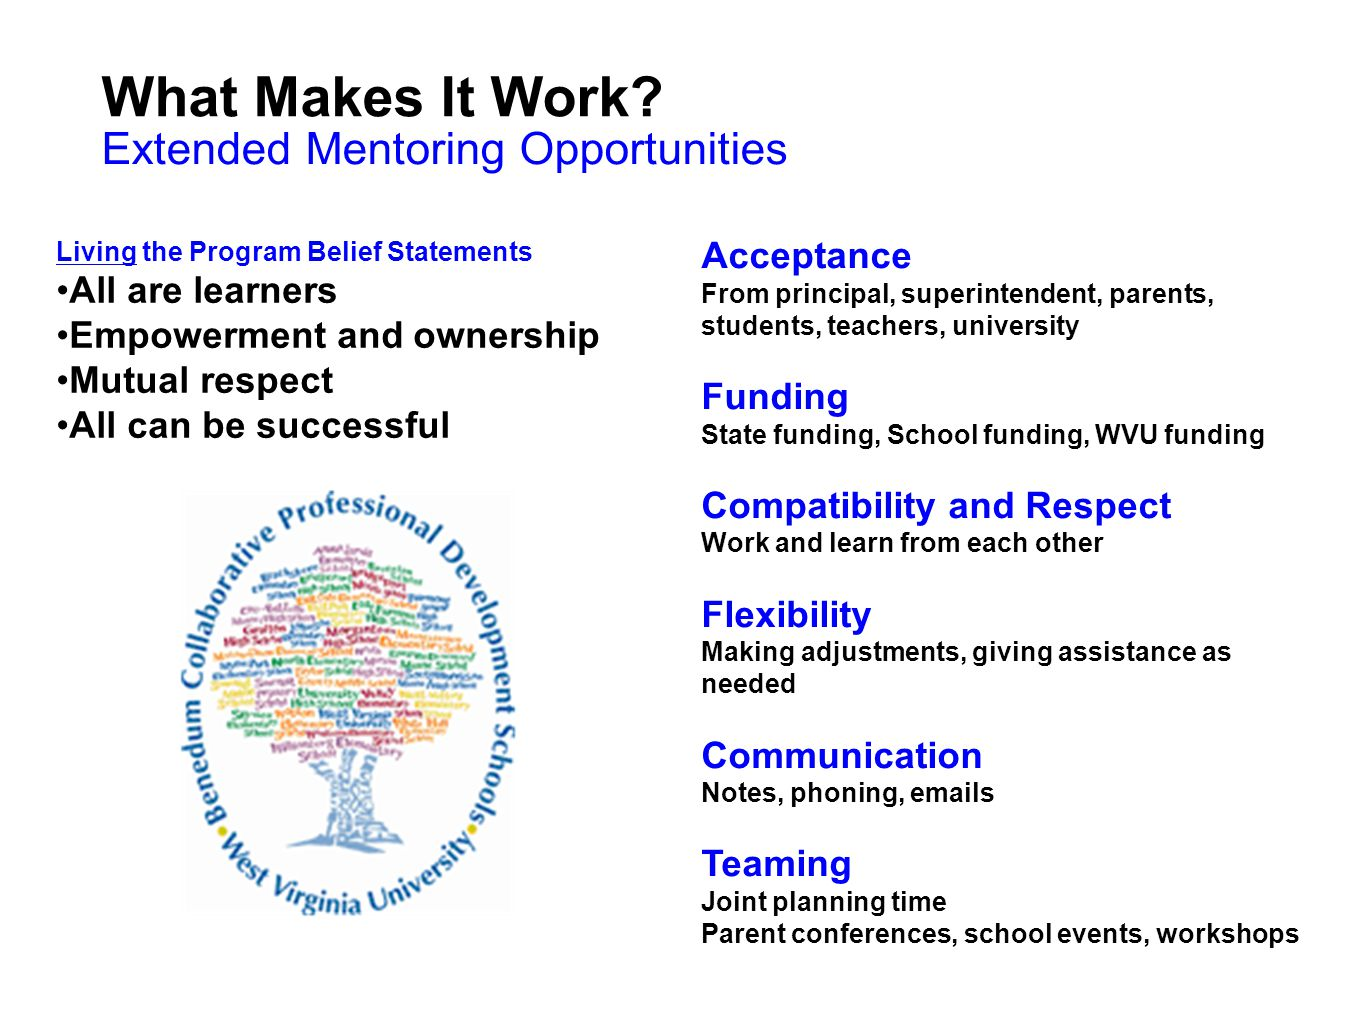 What Makes It Work Extended Mentoring Opportunities Acceptance